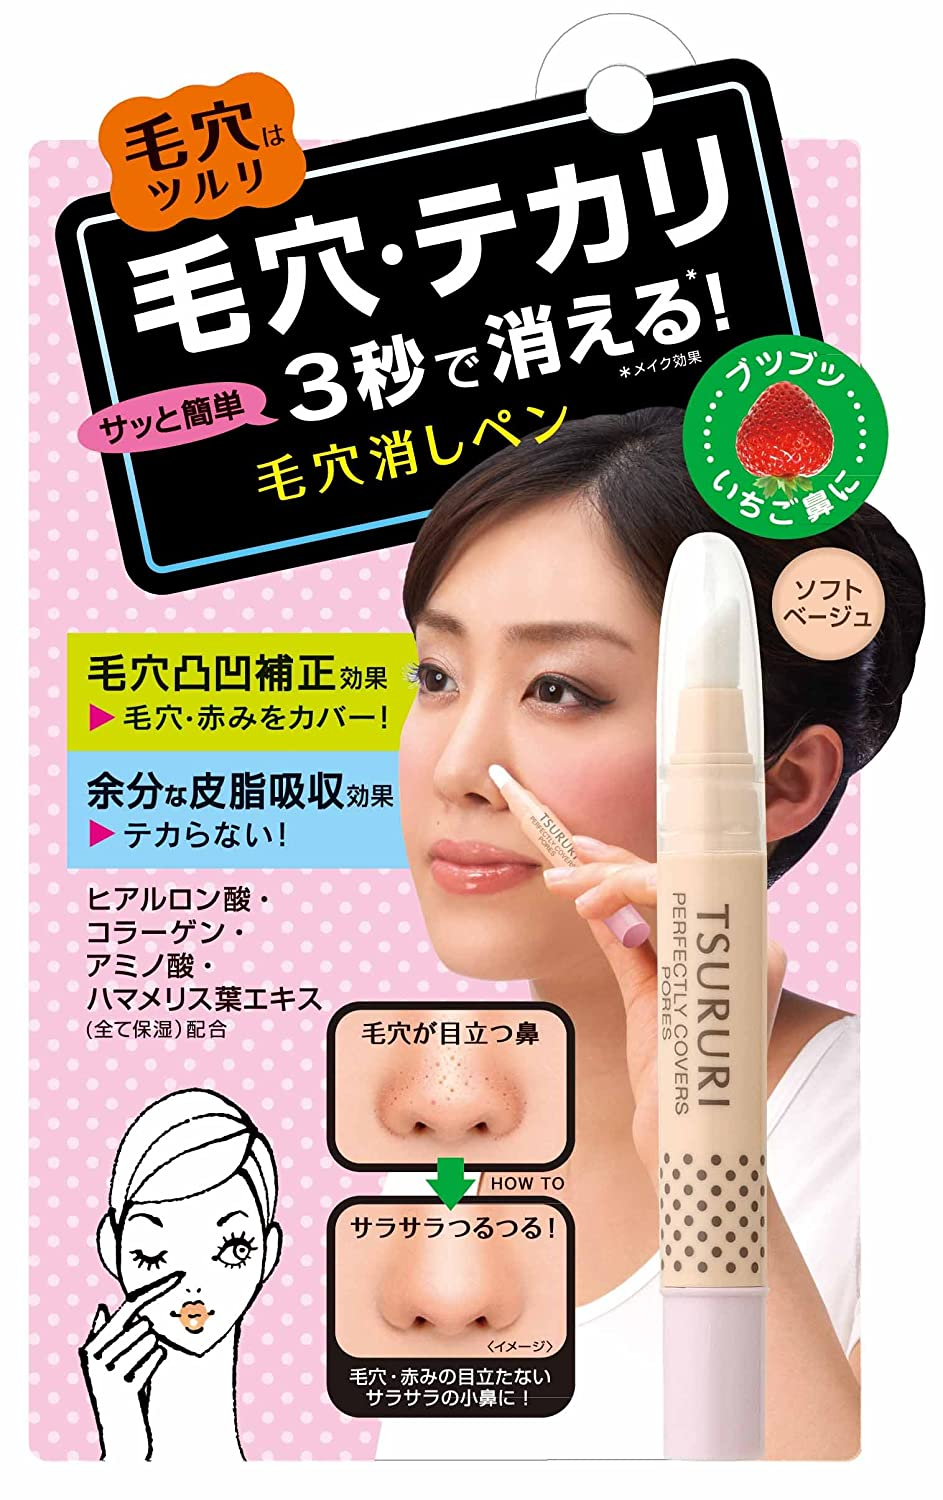 Japan Health and Beauty - One Tsururi pores erase pen *AF27* BU02P03323